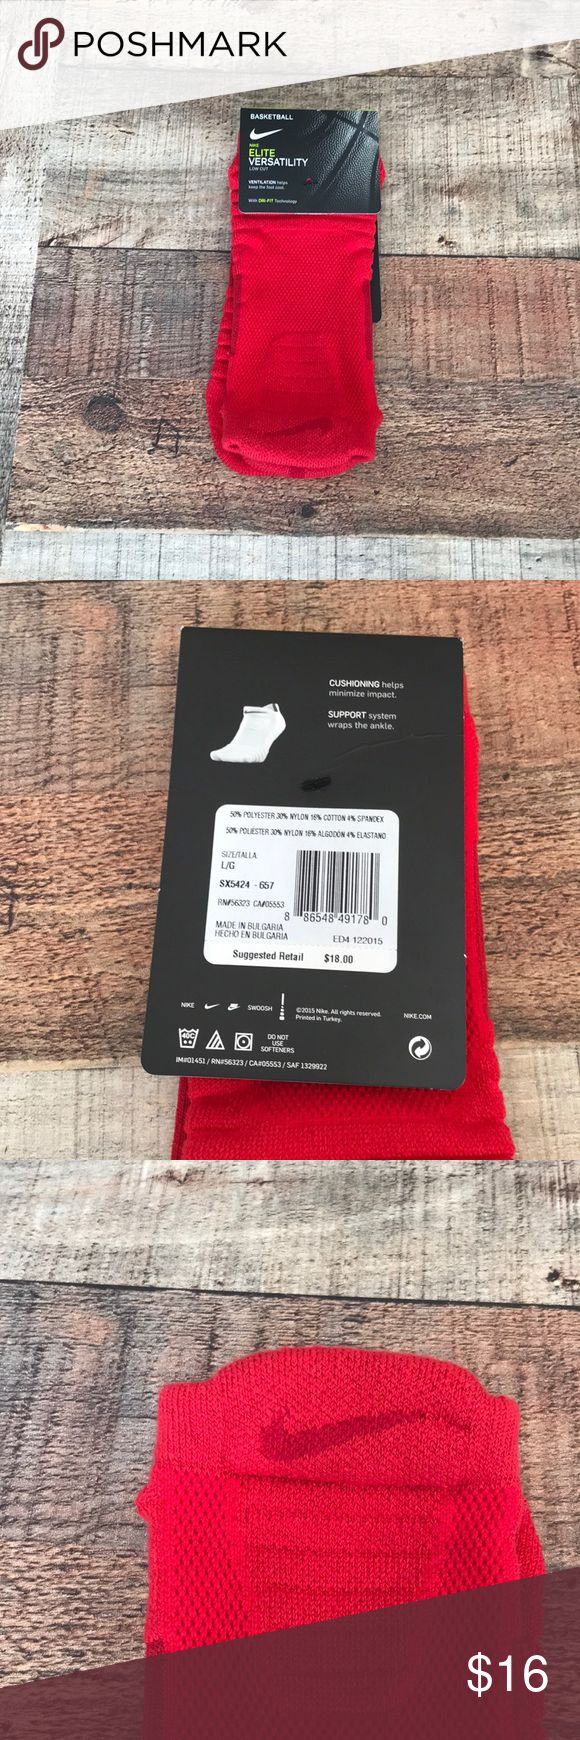 Nike ELITE VERSATILITY Low Cut Ankle Socks Men sizes 8-12 or women sizes 10-13 Ventilation Dri-fit technology  Cushioning  Support Nike Underwear & Socks Athletic Socks